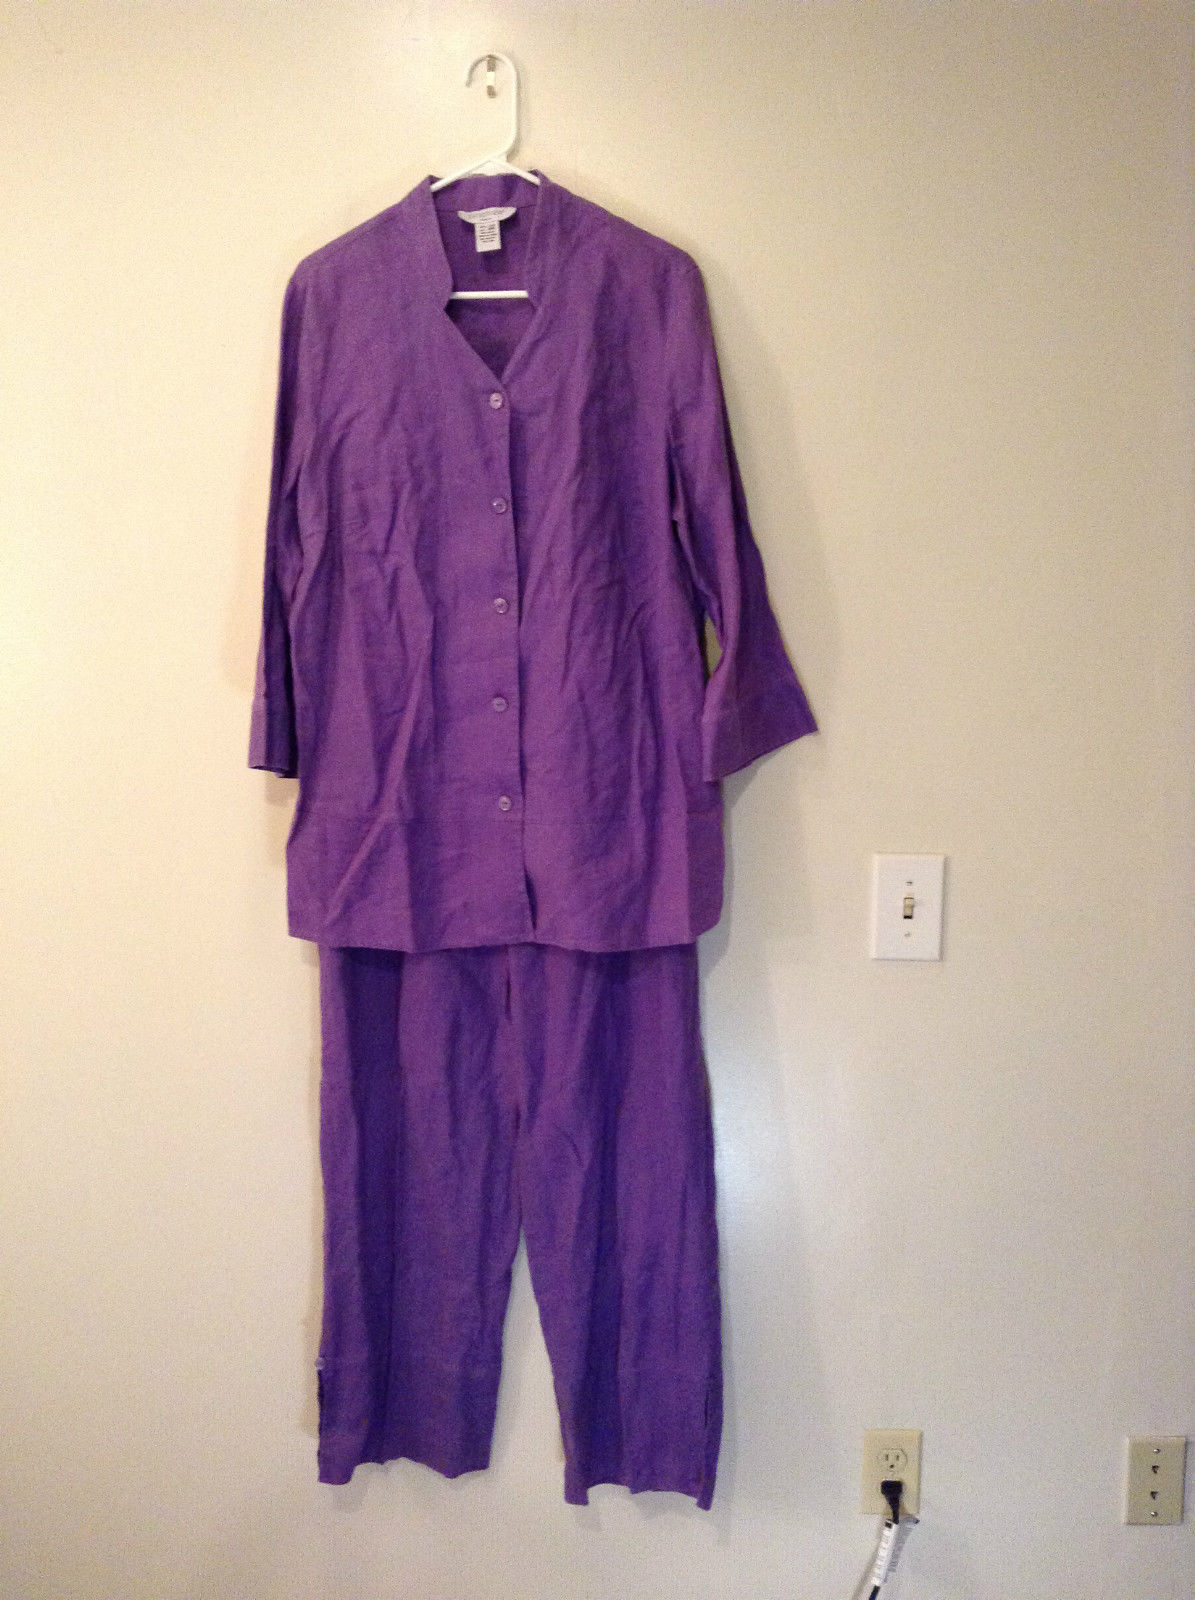 Blouse and Pant Set Paraphrase Woman Size 18W Dark Lavender Button Up Front